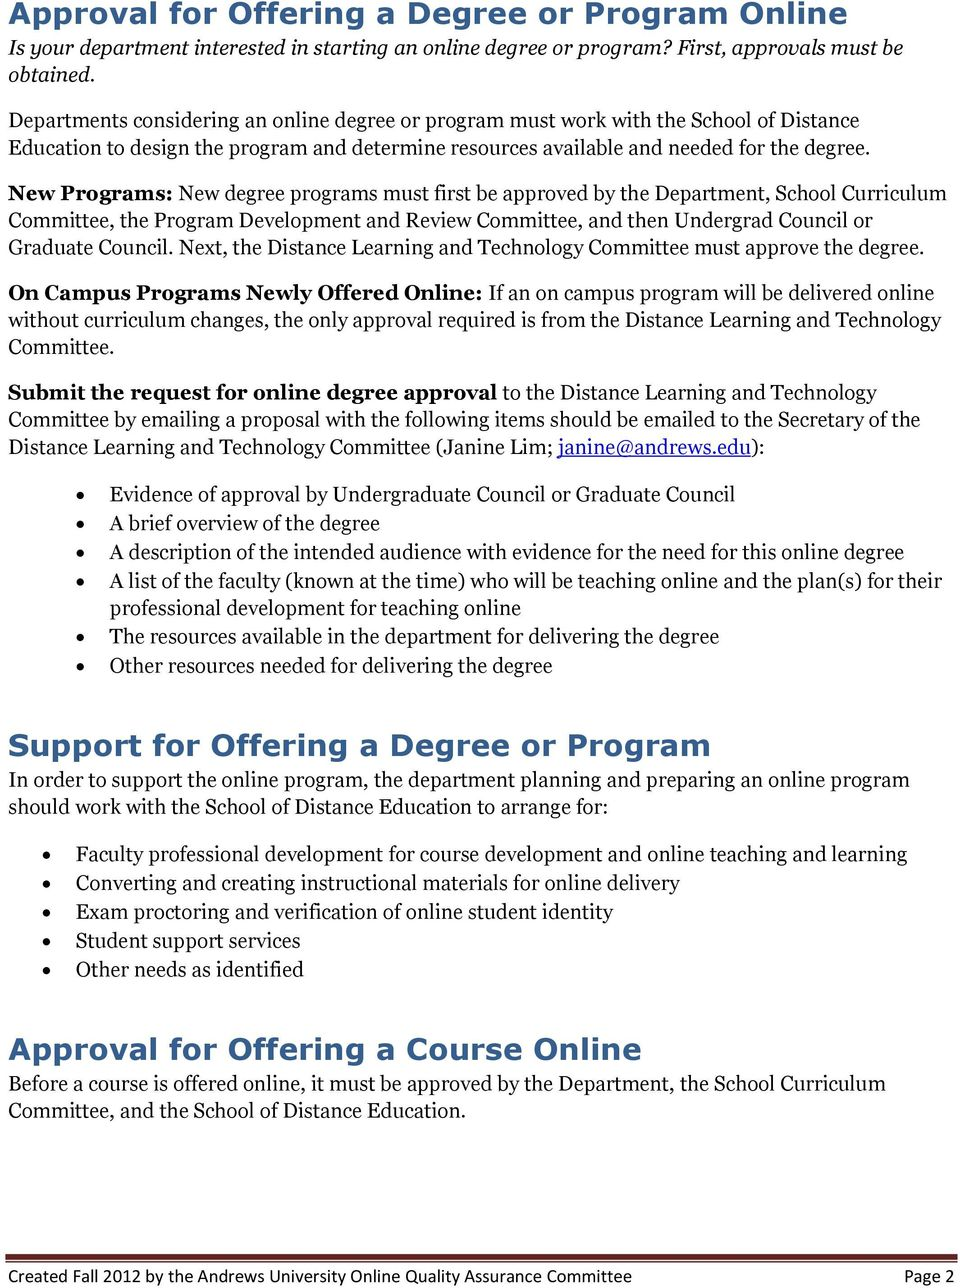 New Programs: New degree programs must first be approved by the Department, School Curriculum Committee, the Program Development and Review Committee, and then Undergrad Council or Graduate Council.